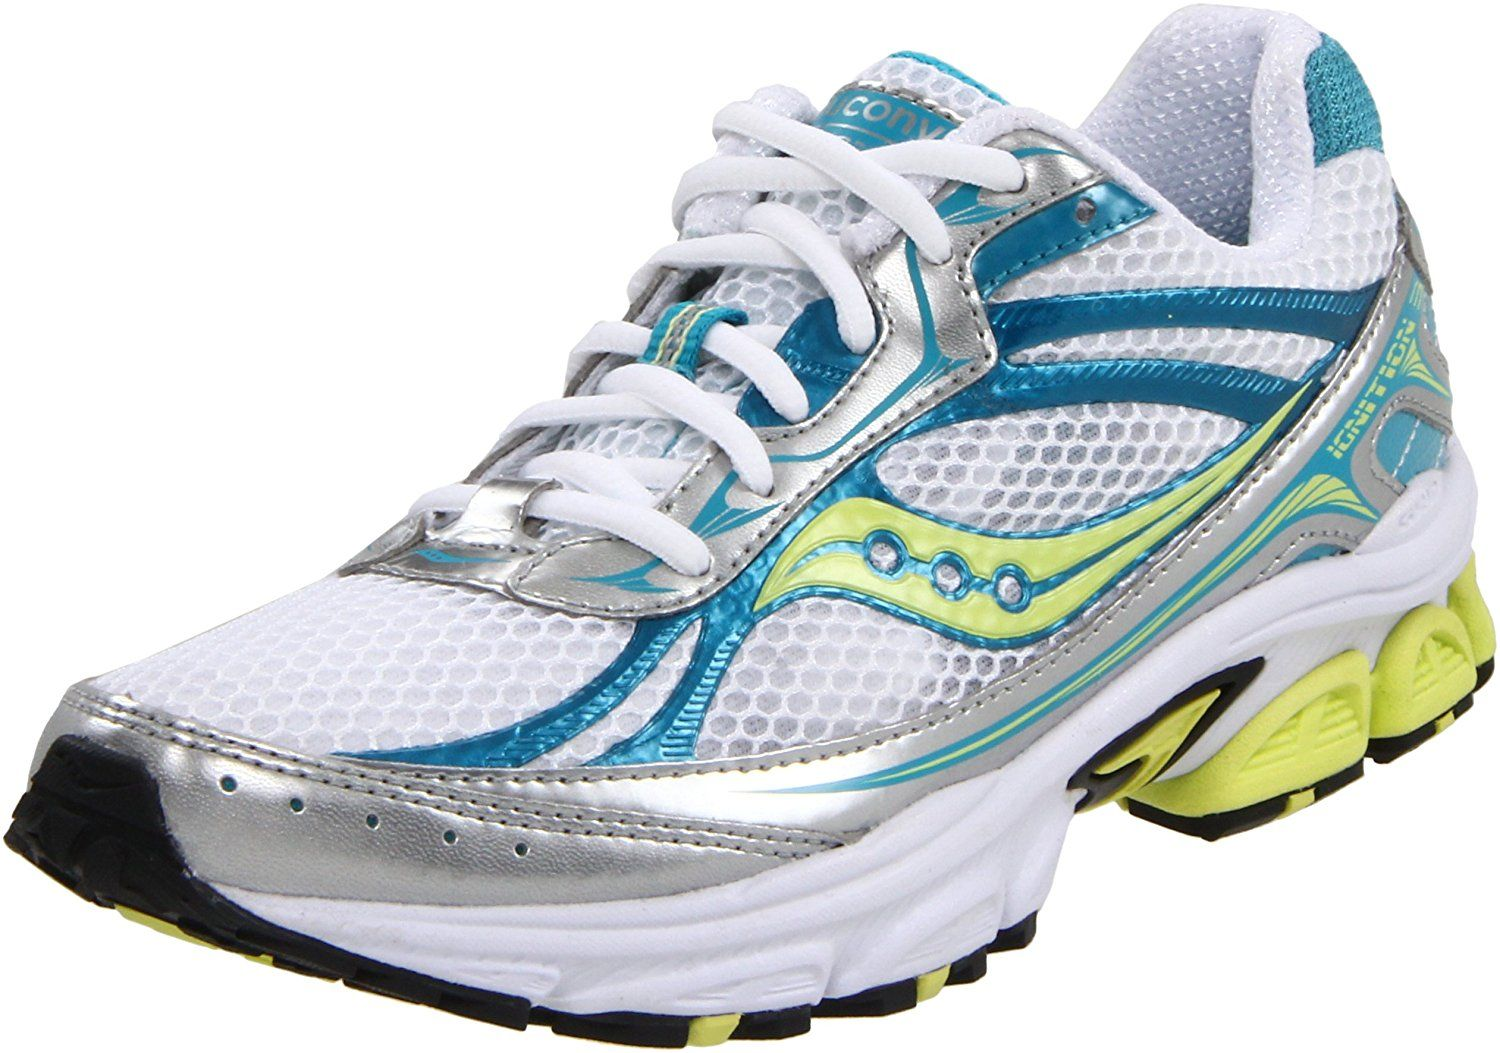 Saucony Women's Grid Ignition 3 Running Shoe >>> Insider's special review you can't miss. Read more  : Running shoes